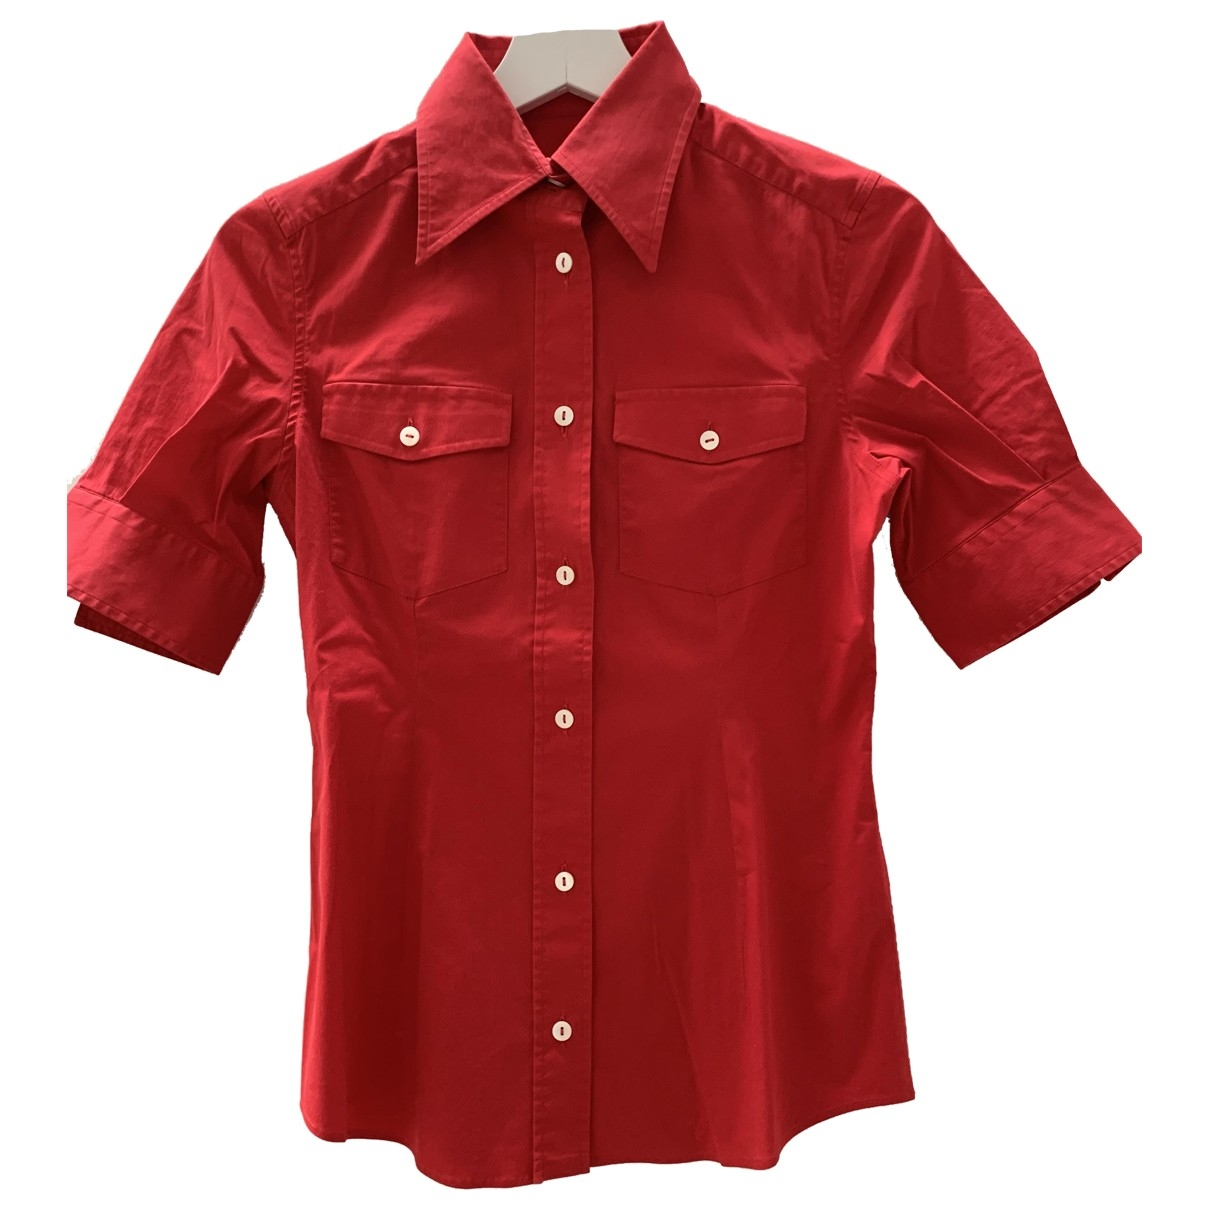 Dolce & Gabbana \N Red Cotton  top for Women 38 IT